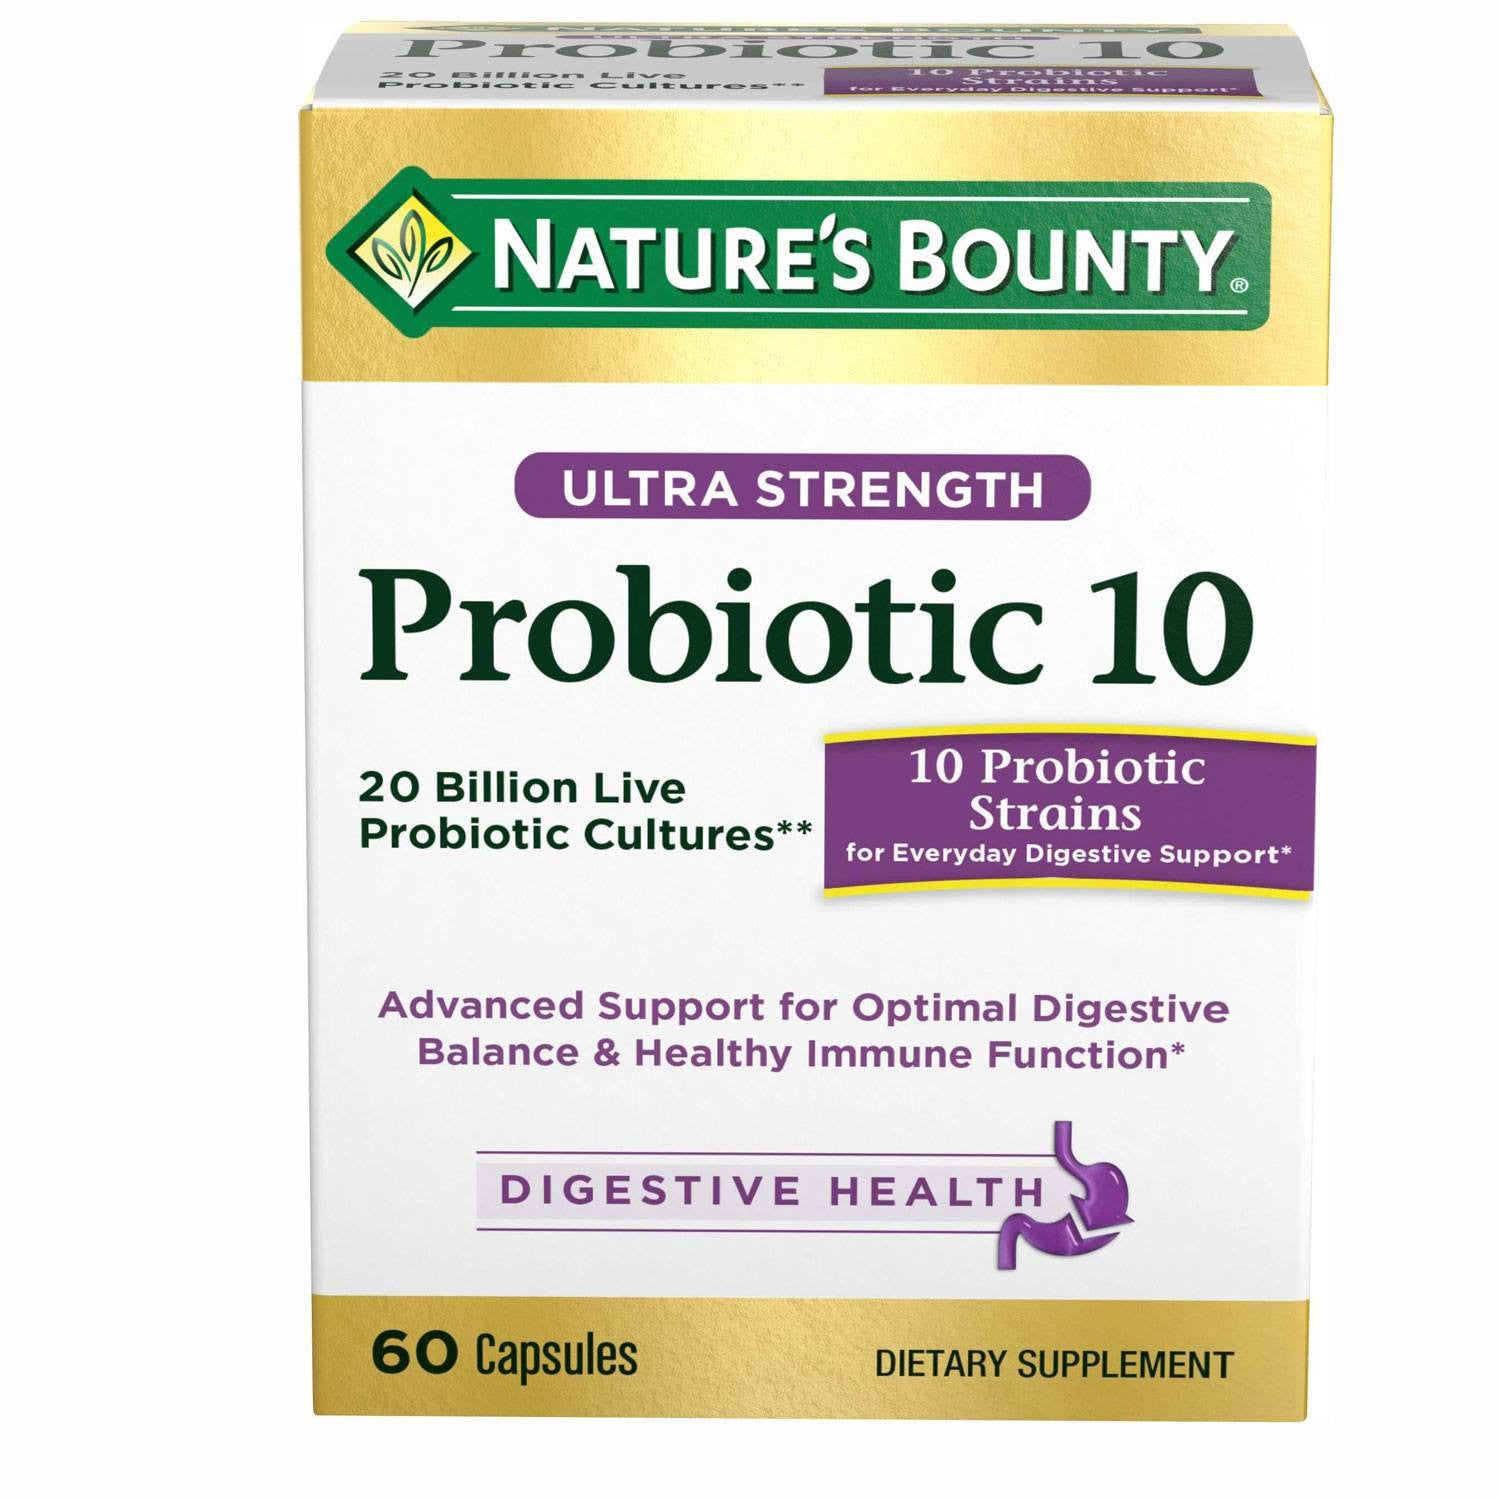 Natures Bounty Advanced Probiotic 10 for Vitamins, Minerals & Supplements by Nature